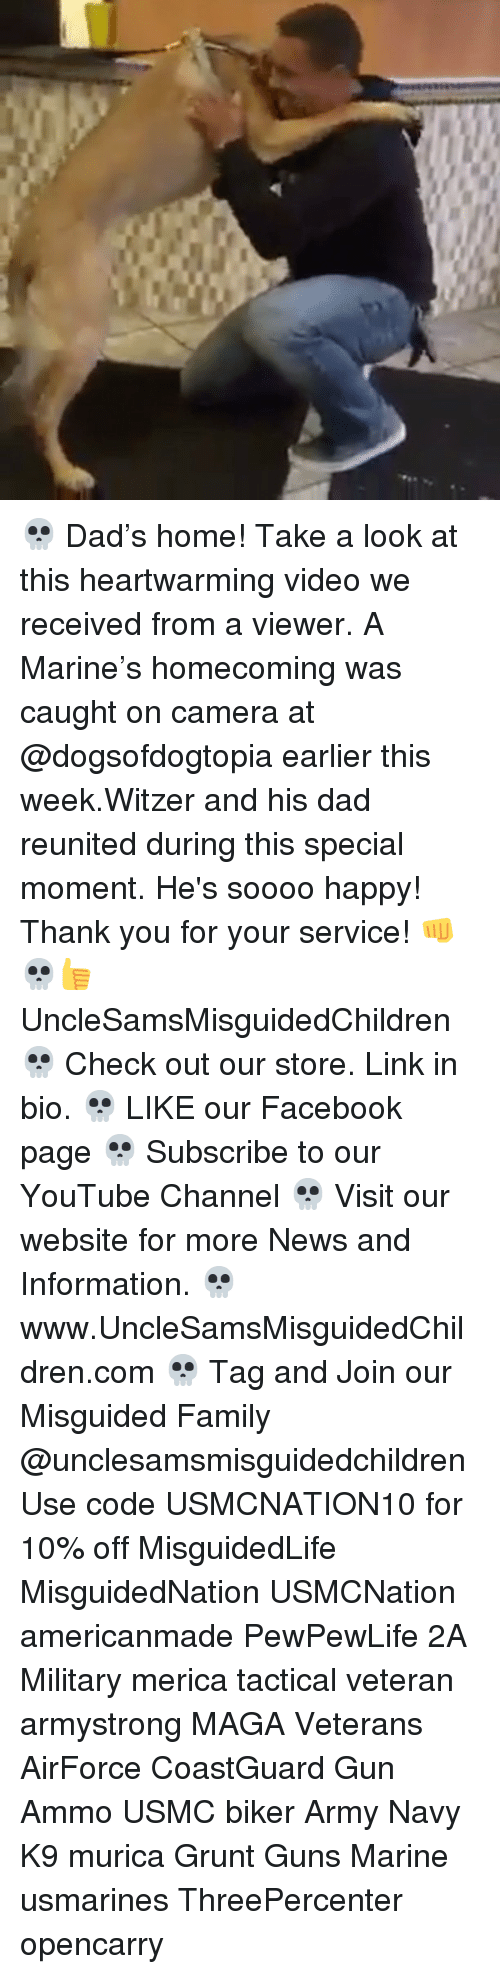 Youtubable: 💀 Dad's home! Take a look at this heartwarming video we received from a viewer. A Marine's homecoming was caught on camera at @dogsofdogtopia earlier this week.Witzer and his dad reunited during this special moment. He's soooo happy! Thank you for your service! 👊💀👍 UncleSamsMisguidedChildren 💀 Check out our store. Link in bio. 💀 LIKE our Facebook page 💀 Subscribe to our YouTube Channel 💀 Visit our website for more News and Information. 💀 www.UncleSamsMisguidedChildren.com 💀 Tag and Join our Misguided Family @unclesamsmisguidedchildren Use code USMCNATION10 for 10% off MisguidedLife MisguidedNation USMCNation americanmade PewPewLife 2A Military merica tactical veteran armystrong MAGA Veterans AirForce CoastGuard Gun Ammo USMC biker Army Navy K9 murica Grunt Guns Marine usmarines ThreePercenter opencarry